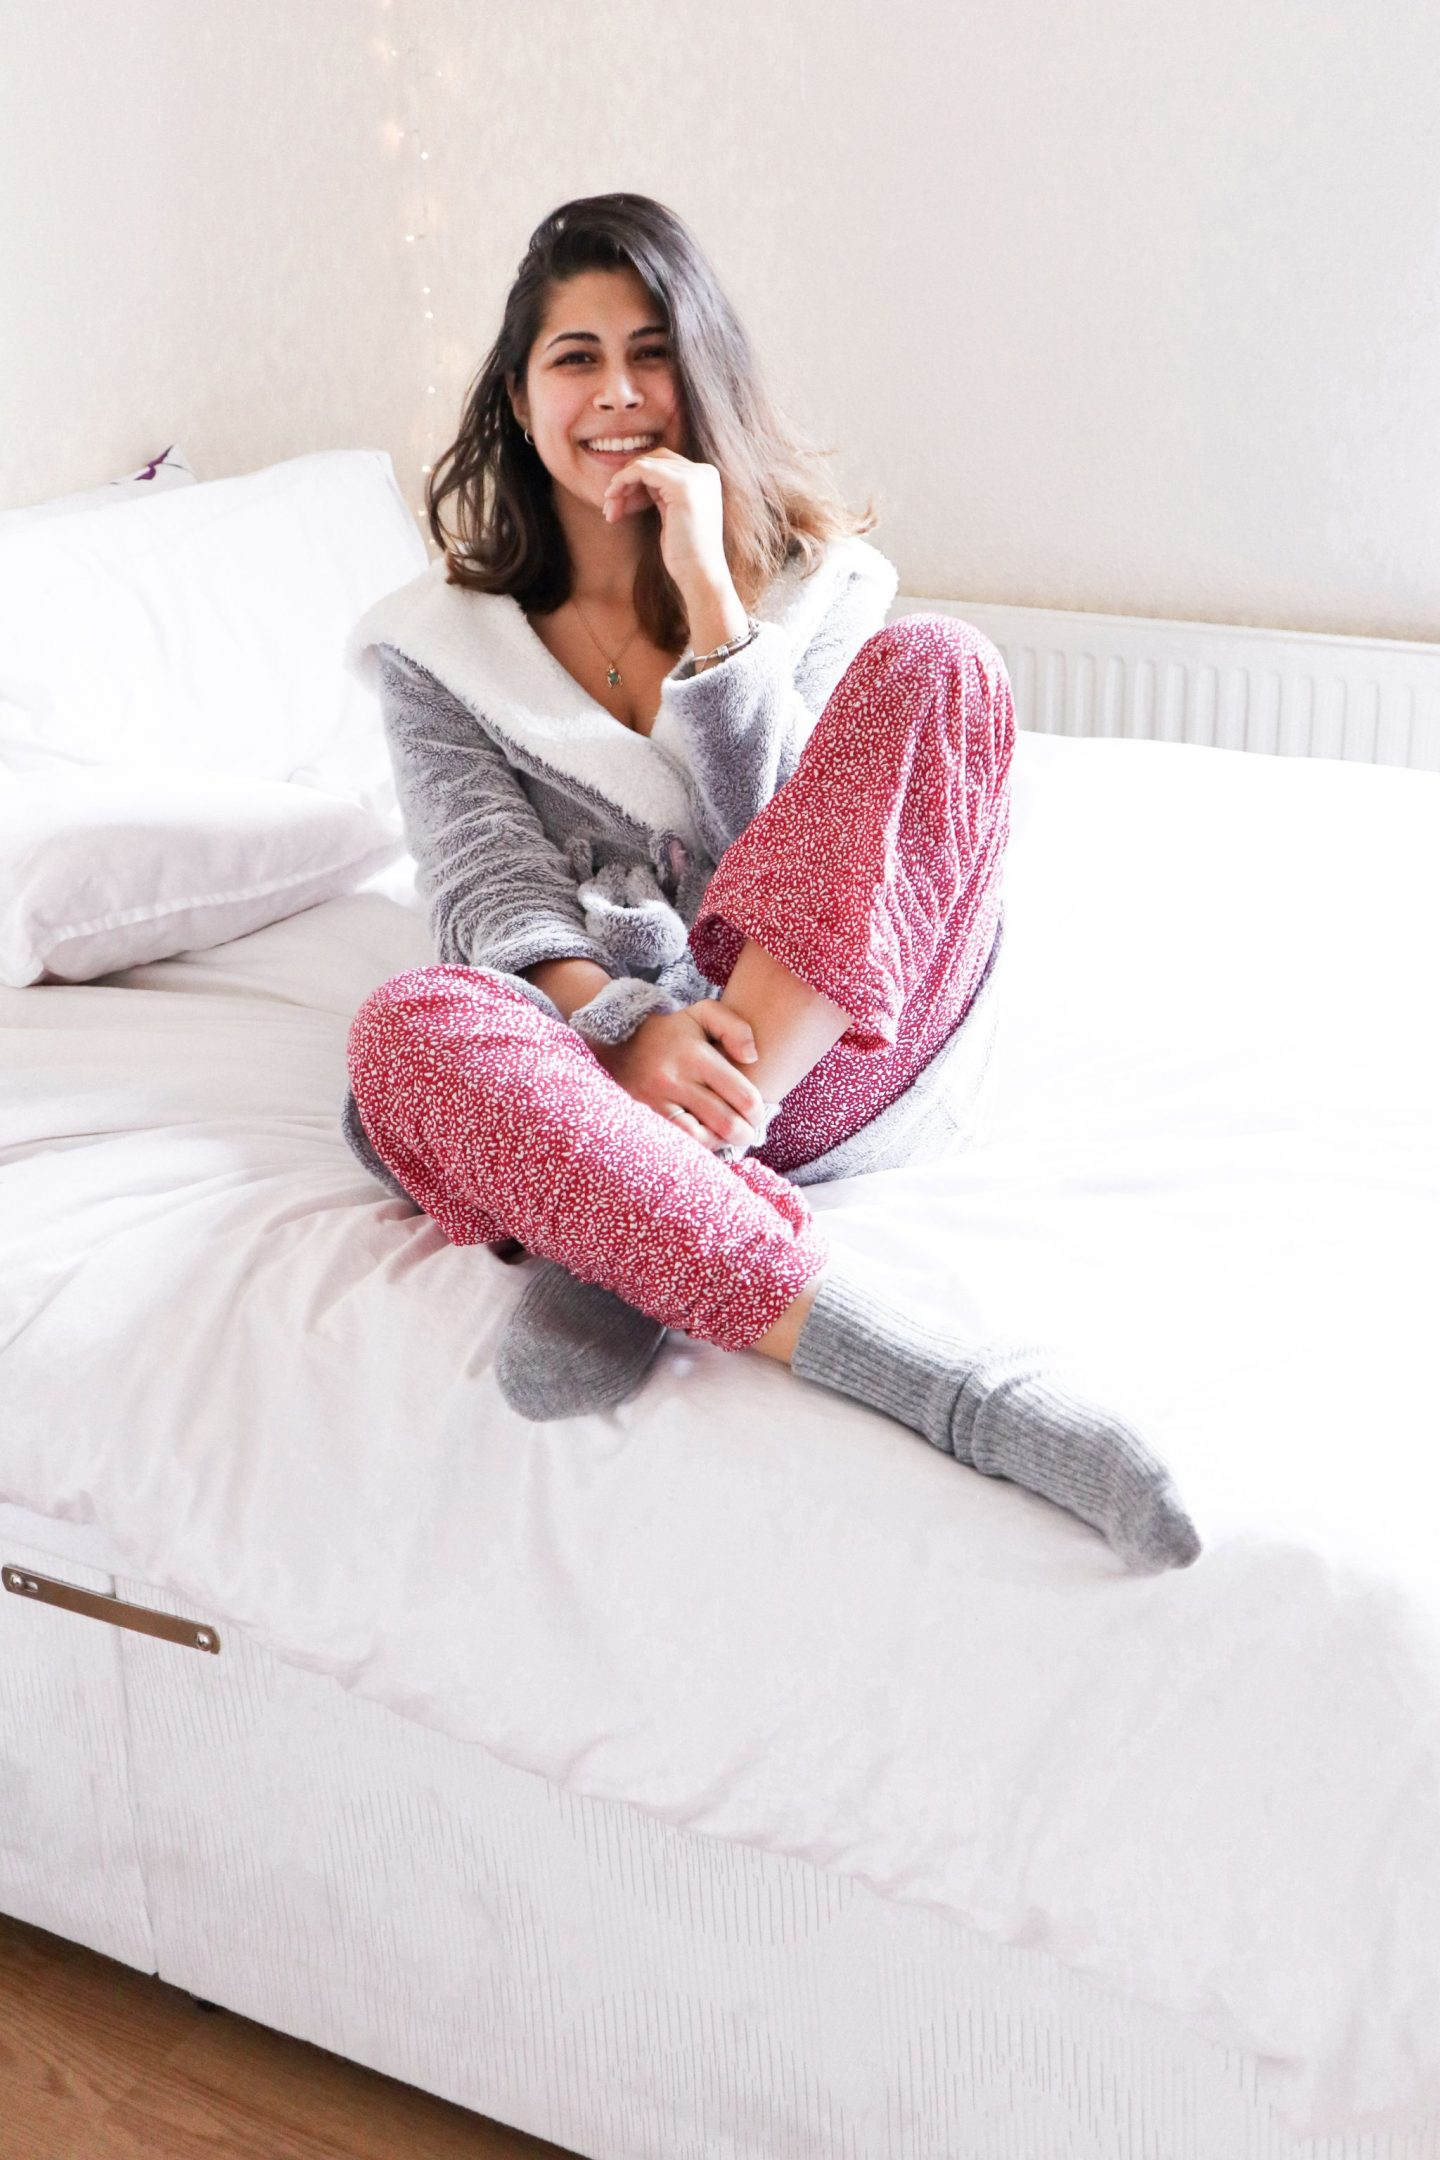 7 things I'd rather do in the morning - girl in pjs and dressing gown